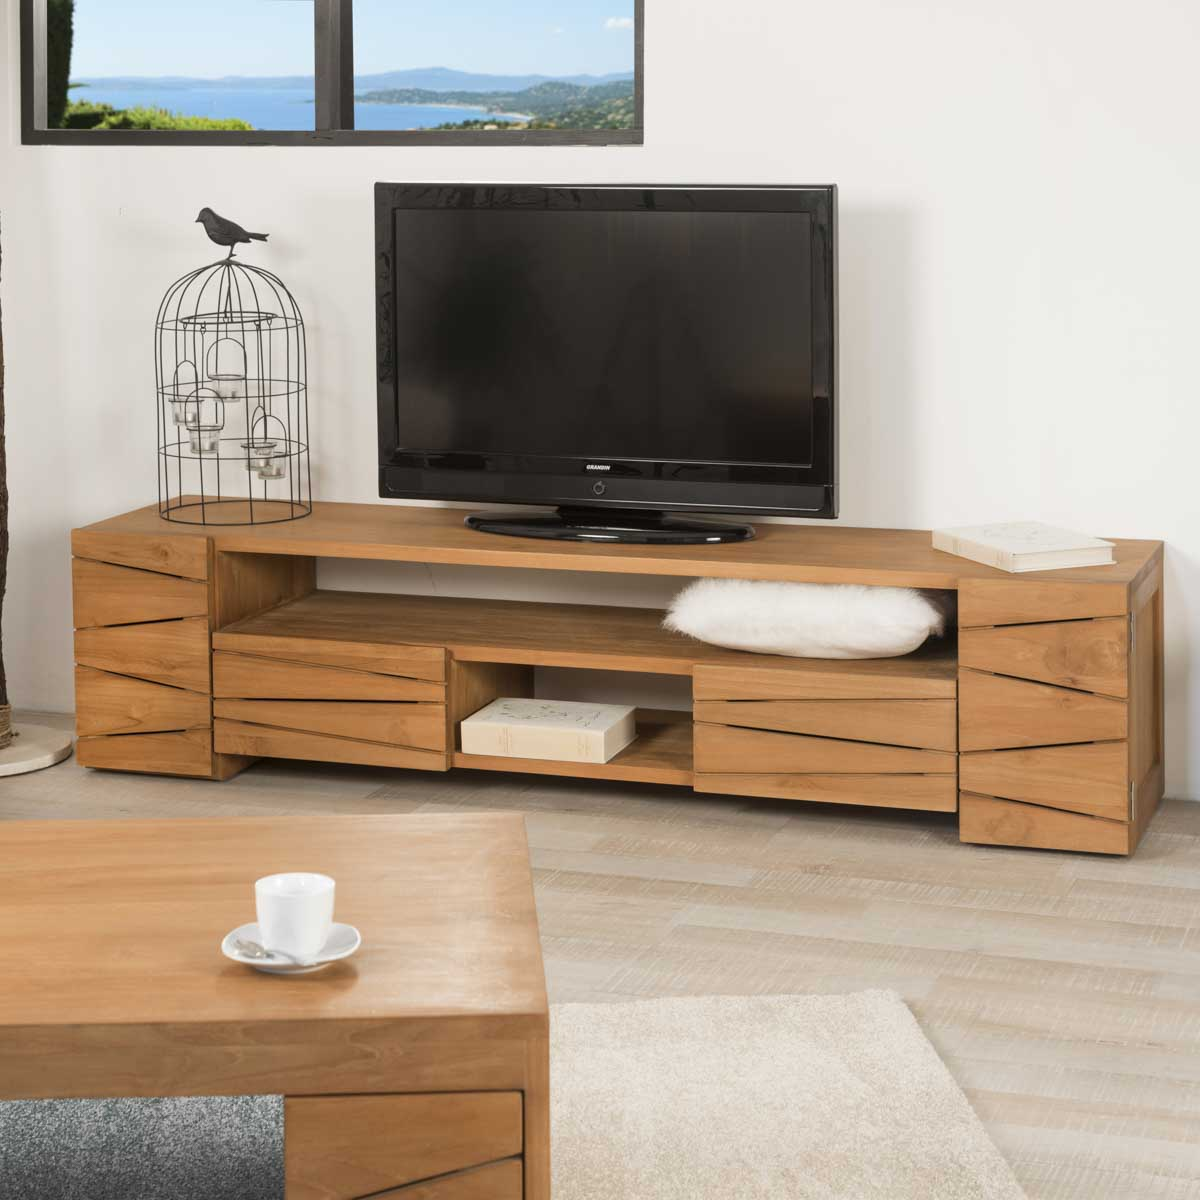 Meuble Tv Teck Meuble Tv Bois Naturel Rectangle S R Nit 170  # Table Televiseur En Bois